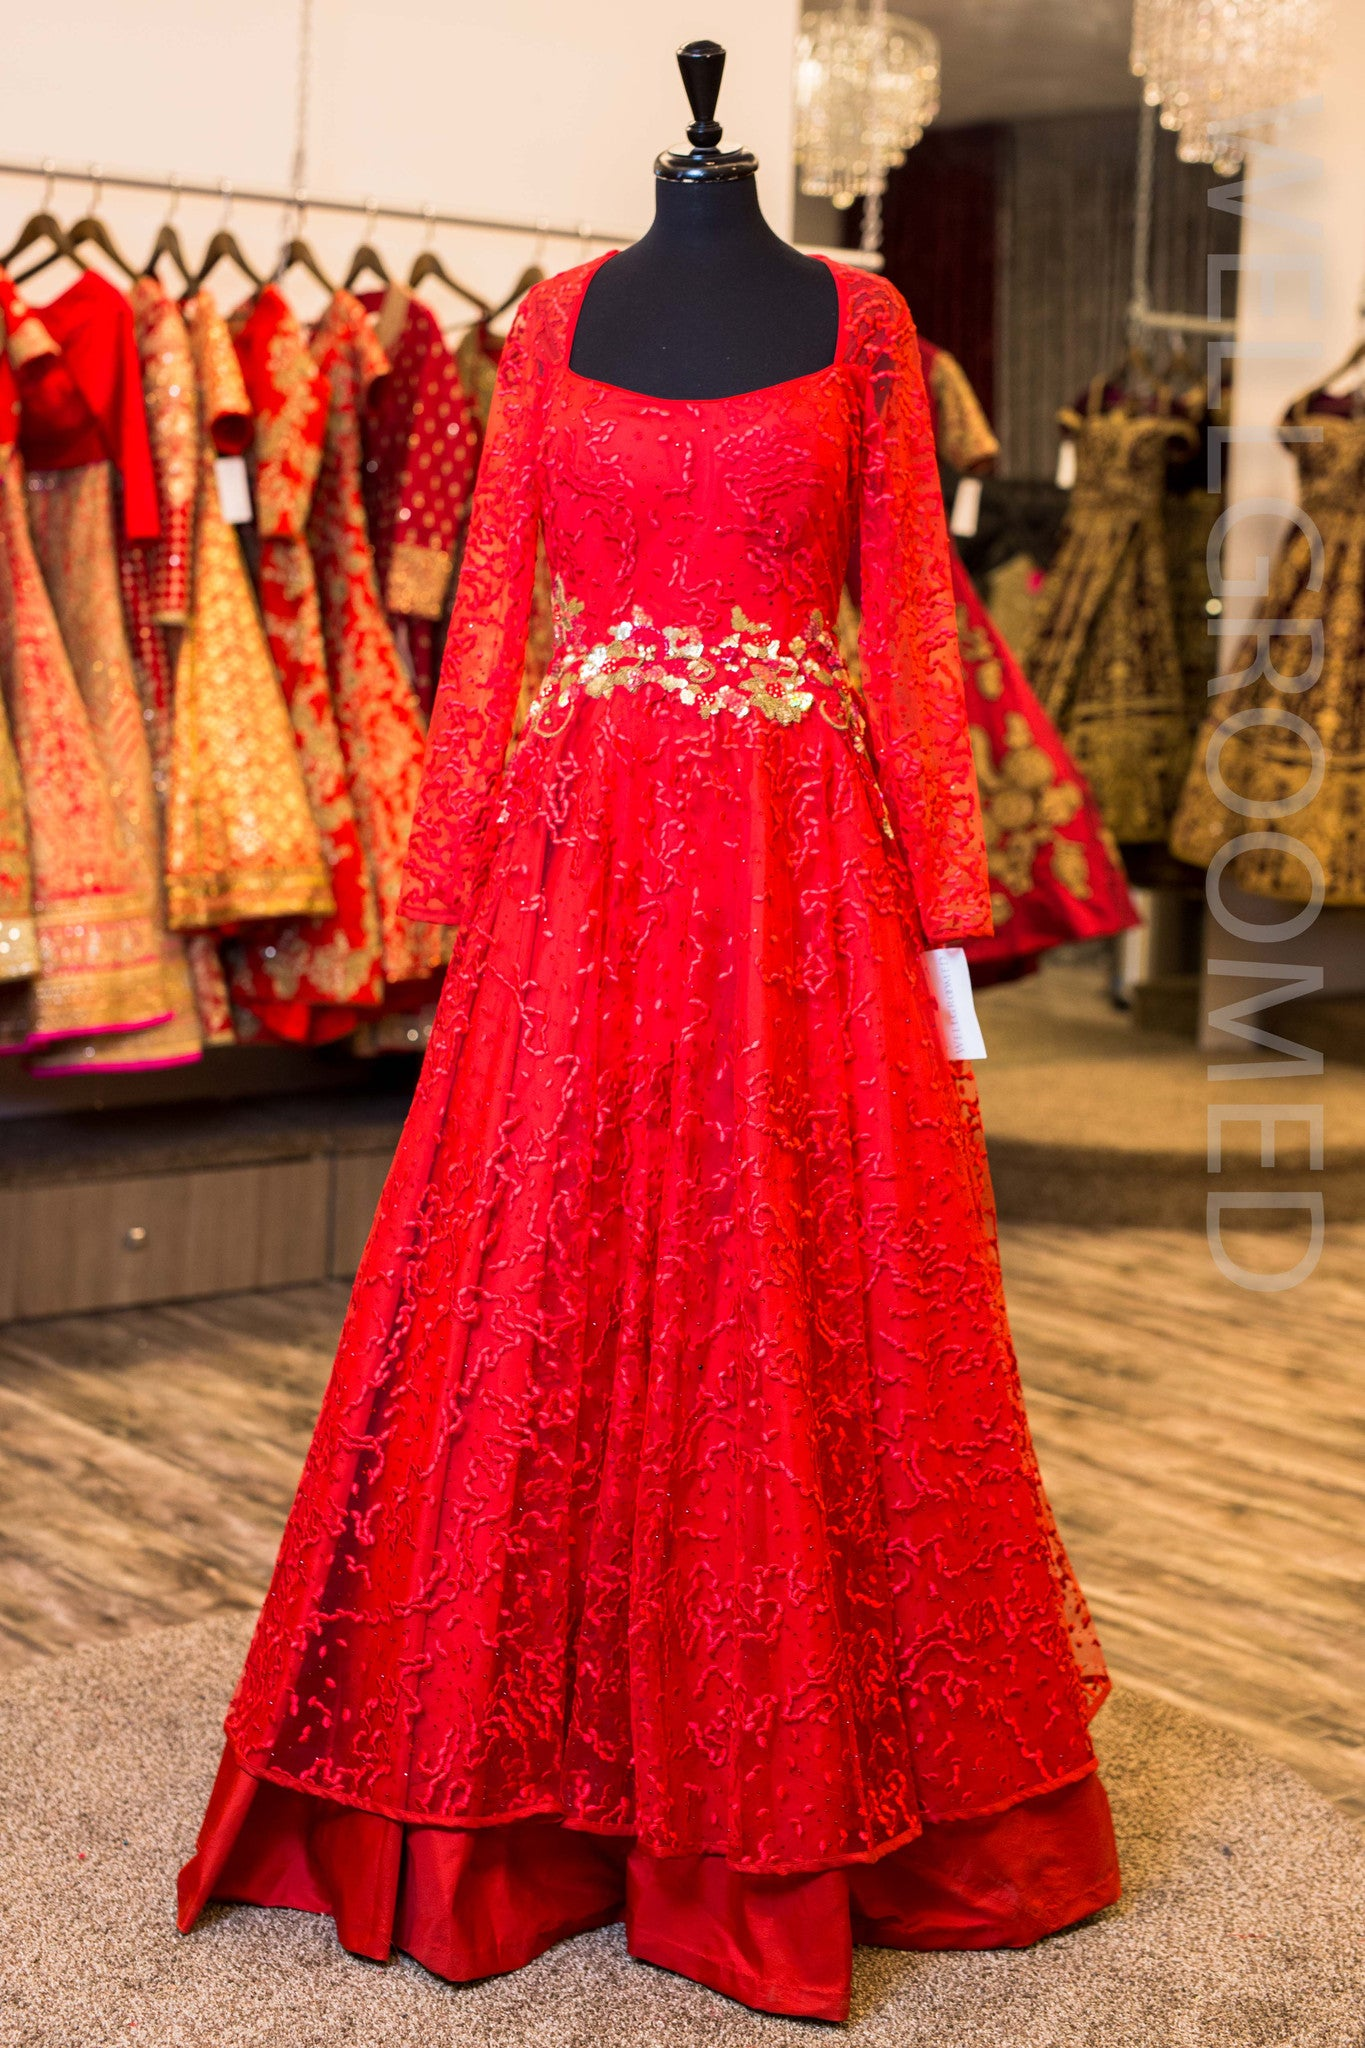 Red Chantilly Lace 2 Tier Gown